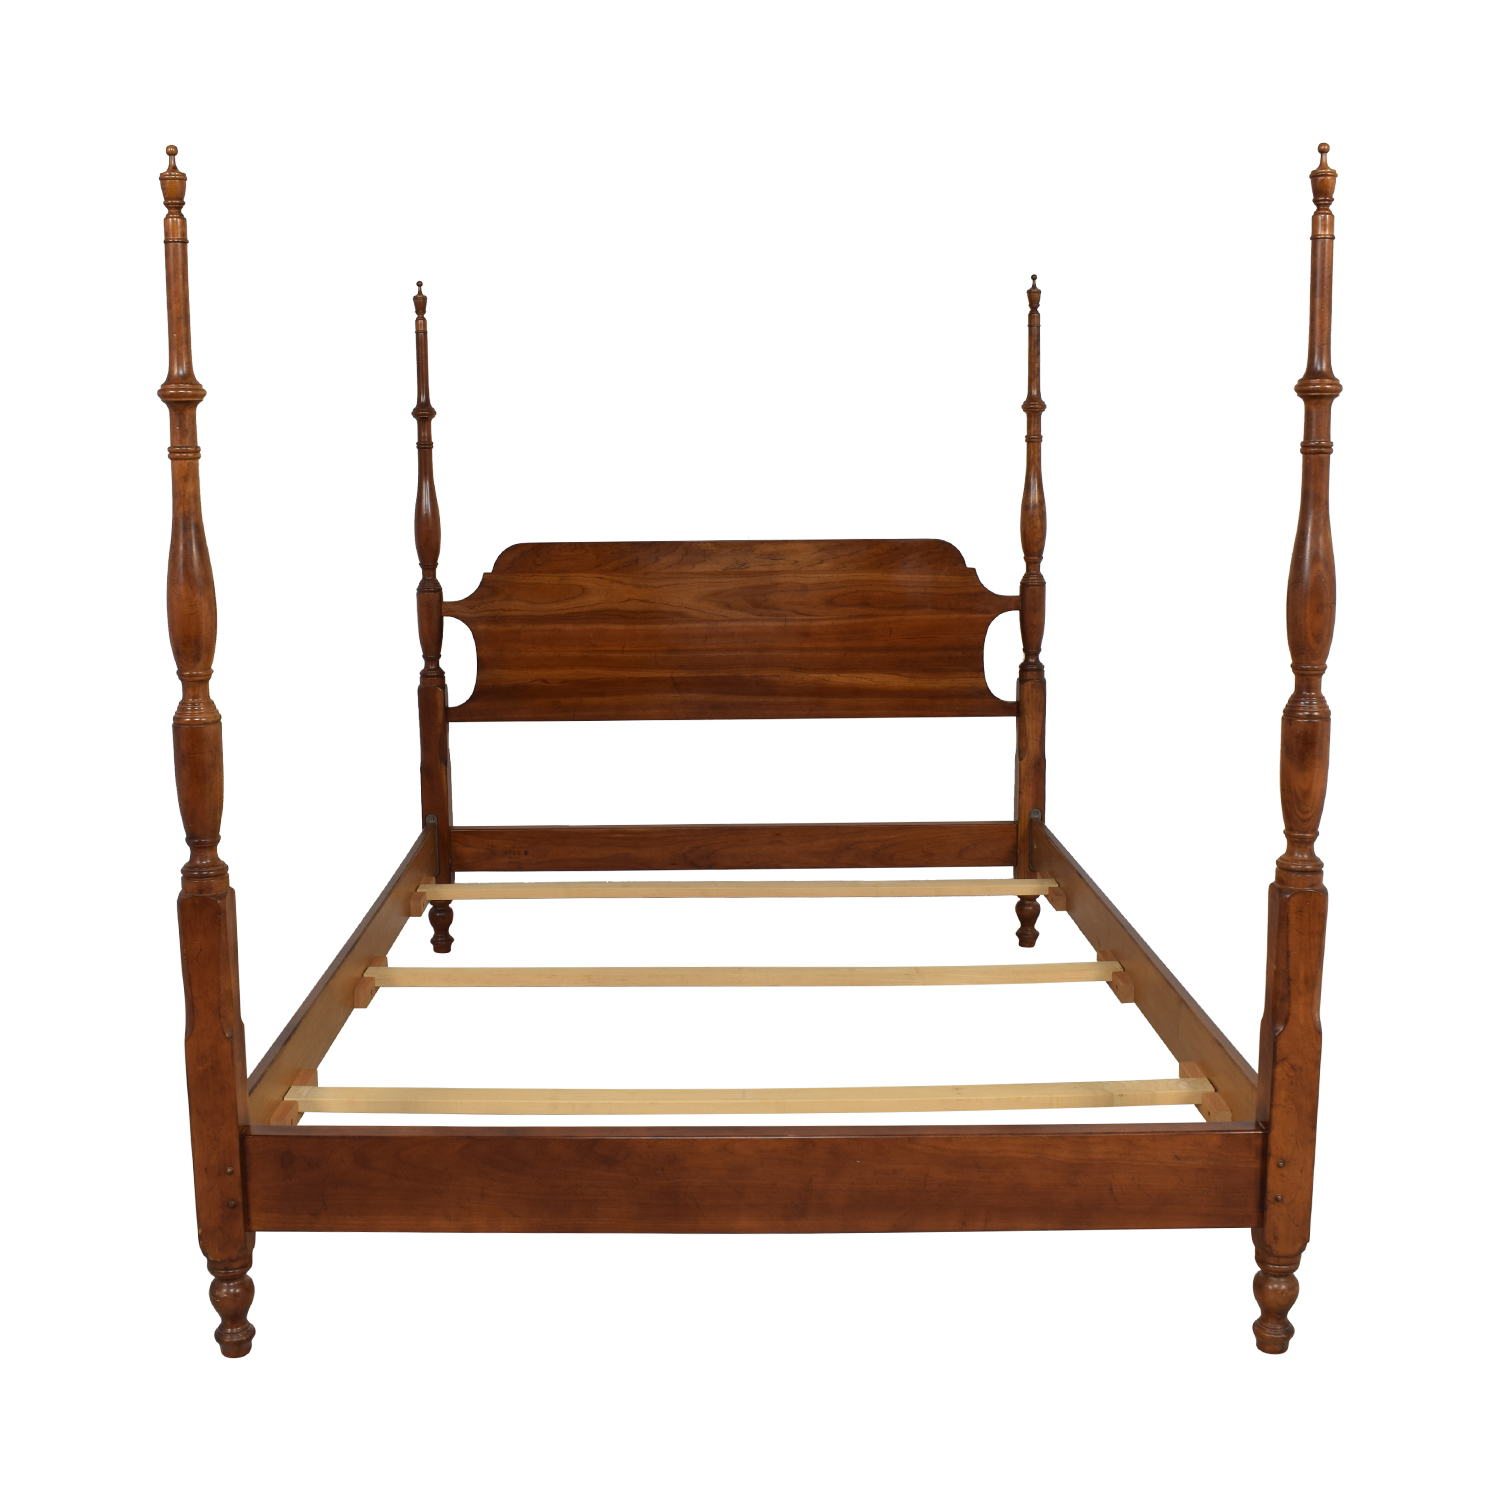 Stickley Furniture Stickley Furniture Four Poster Queen Bed used